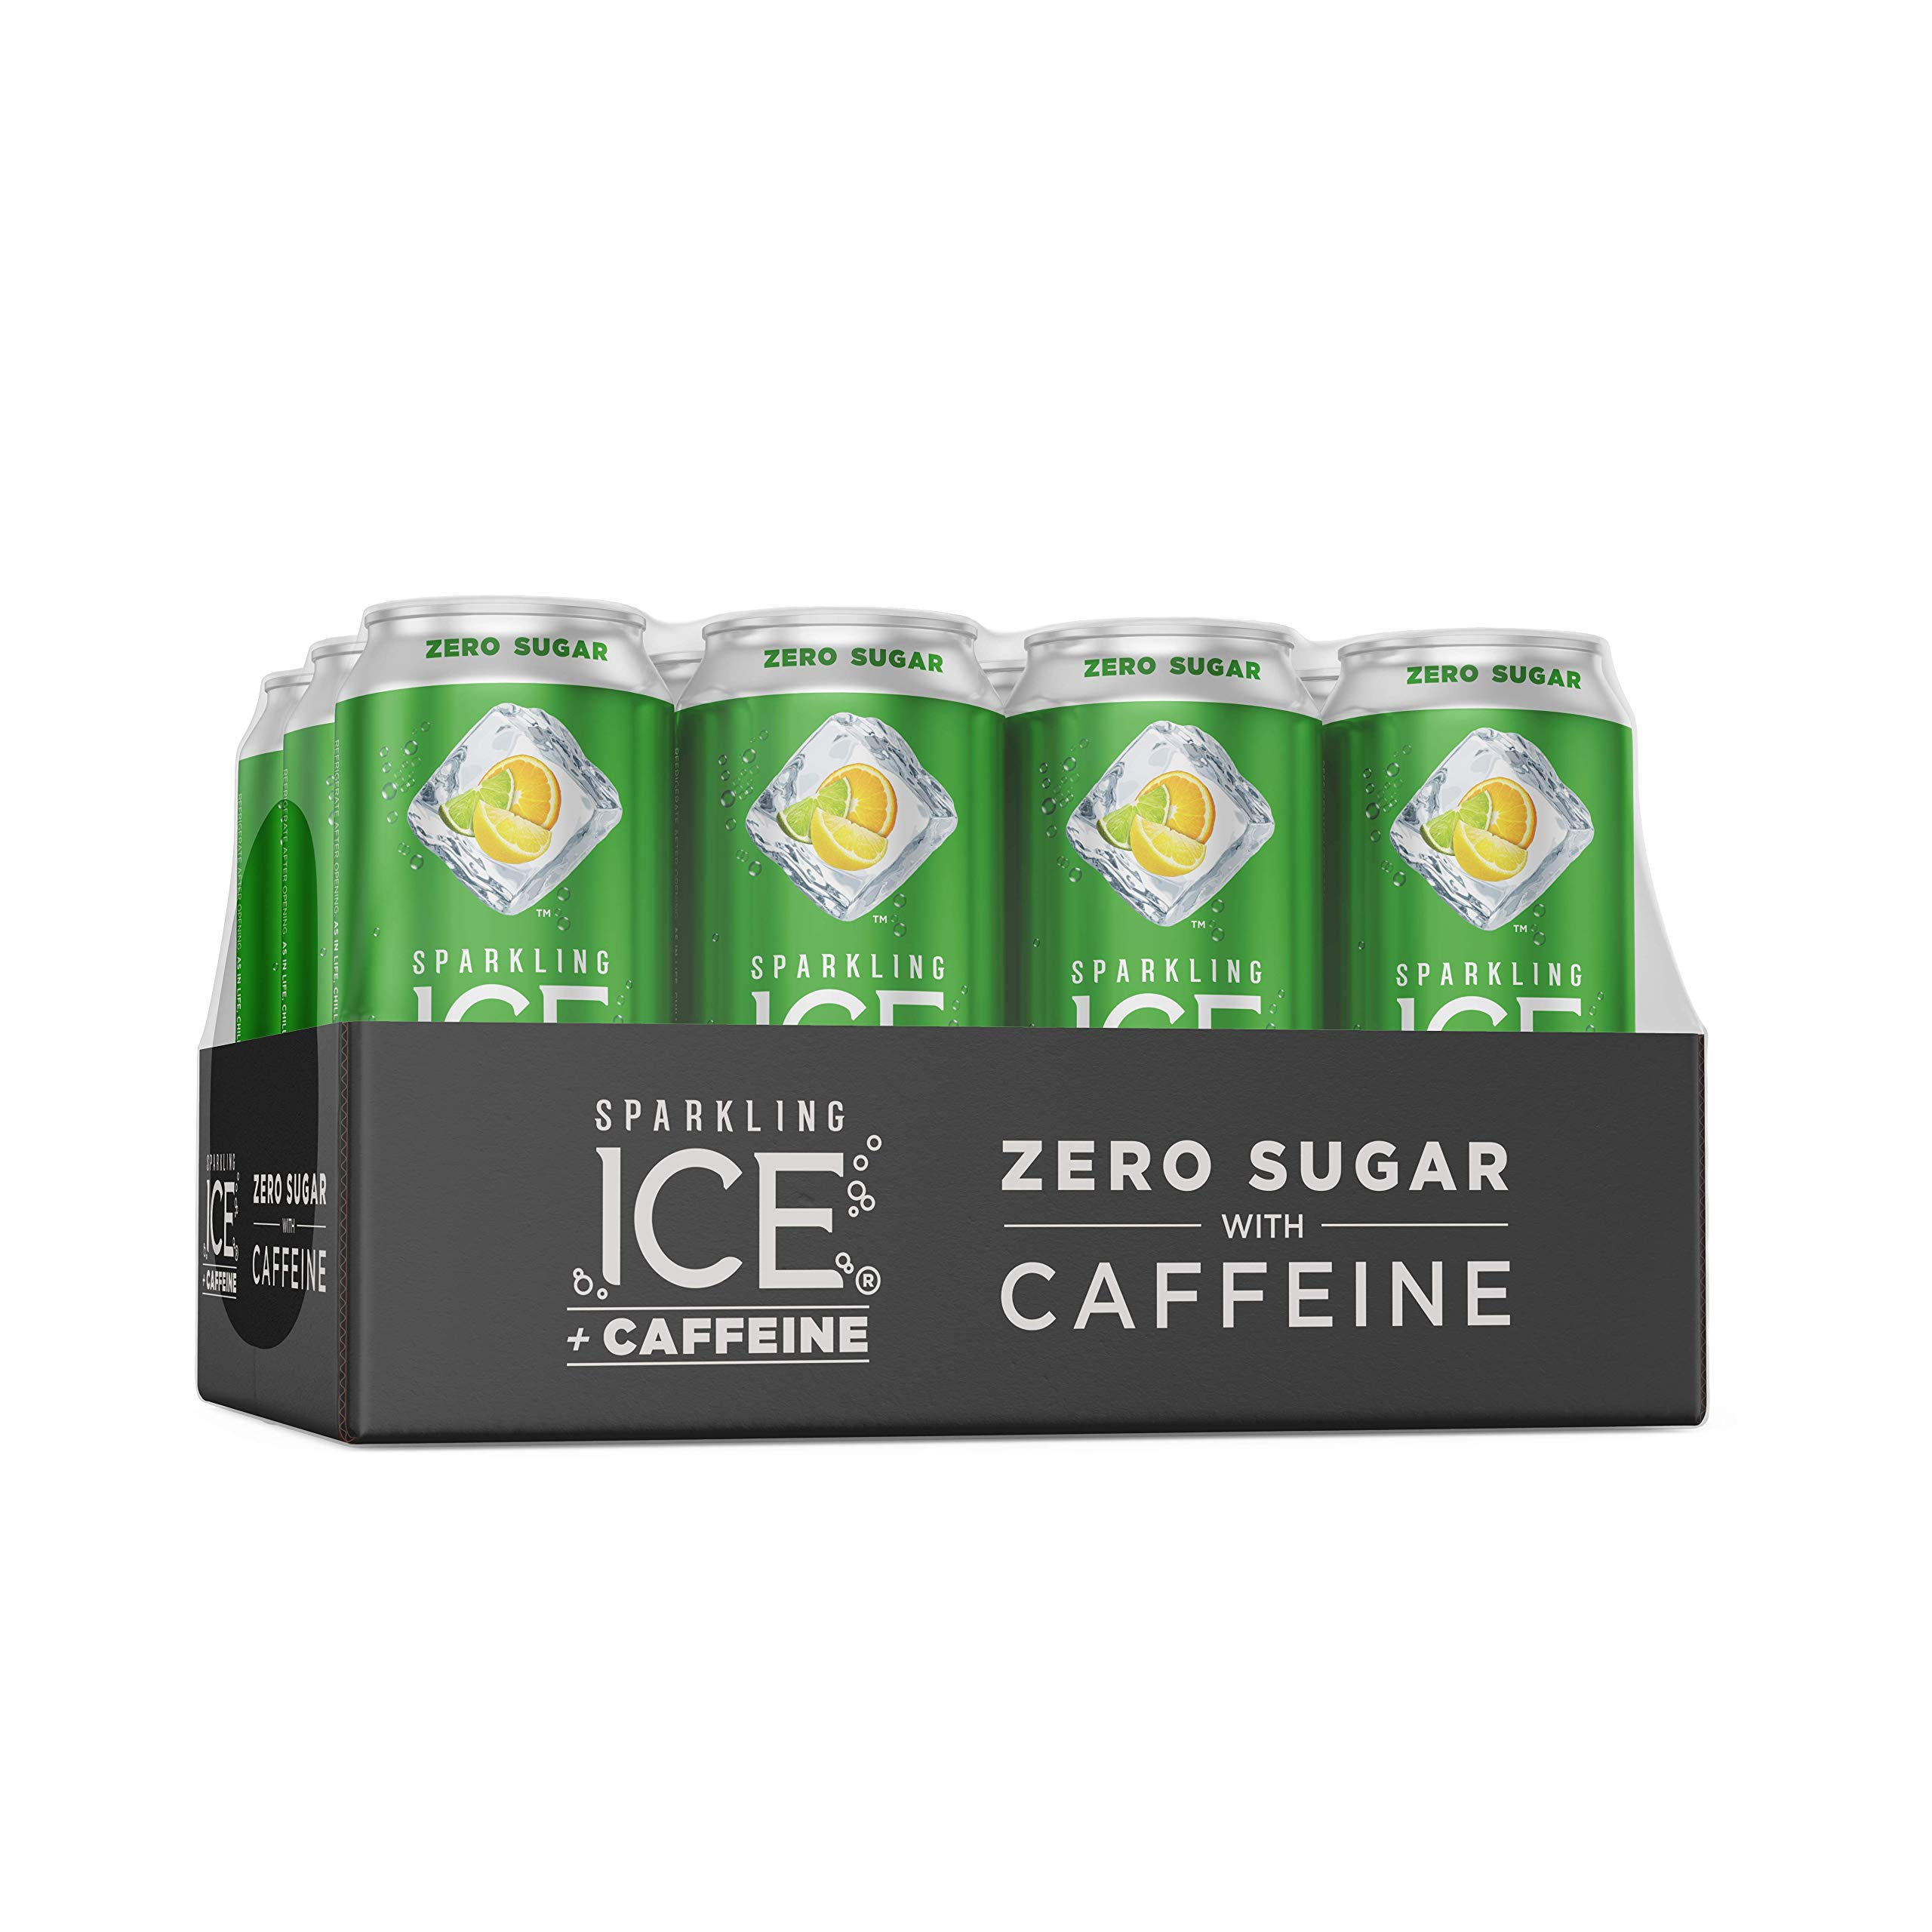 Sparkling Ice +Caffeine Triple Citrus, Naturally Flavored Sparkling Water with Antioxidants & Vitamins, Zero Sugar, 16oz Cans (Pack Of 12)